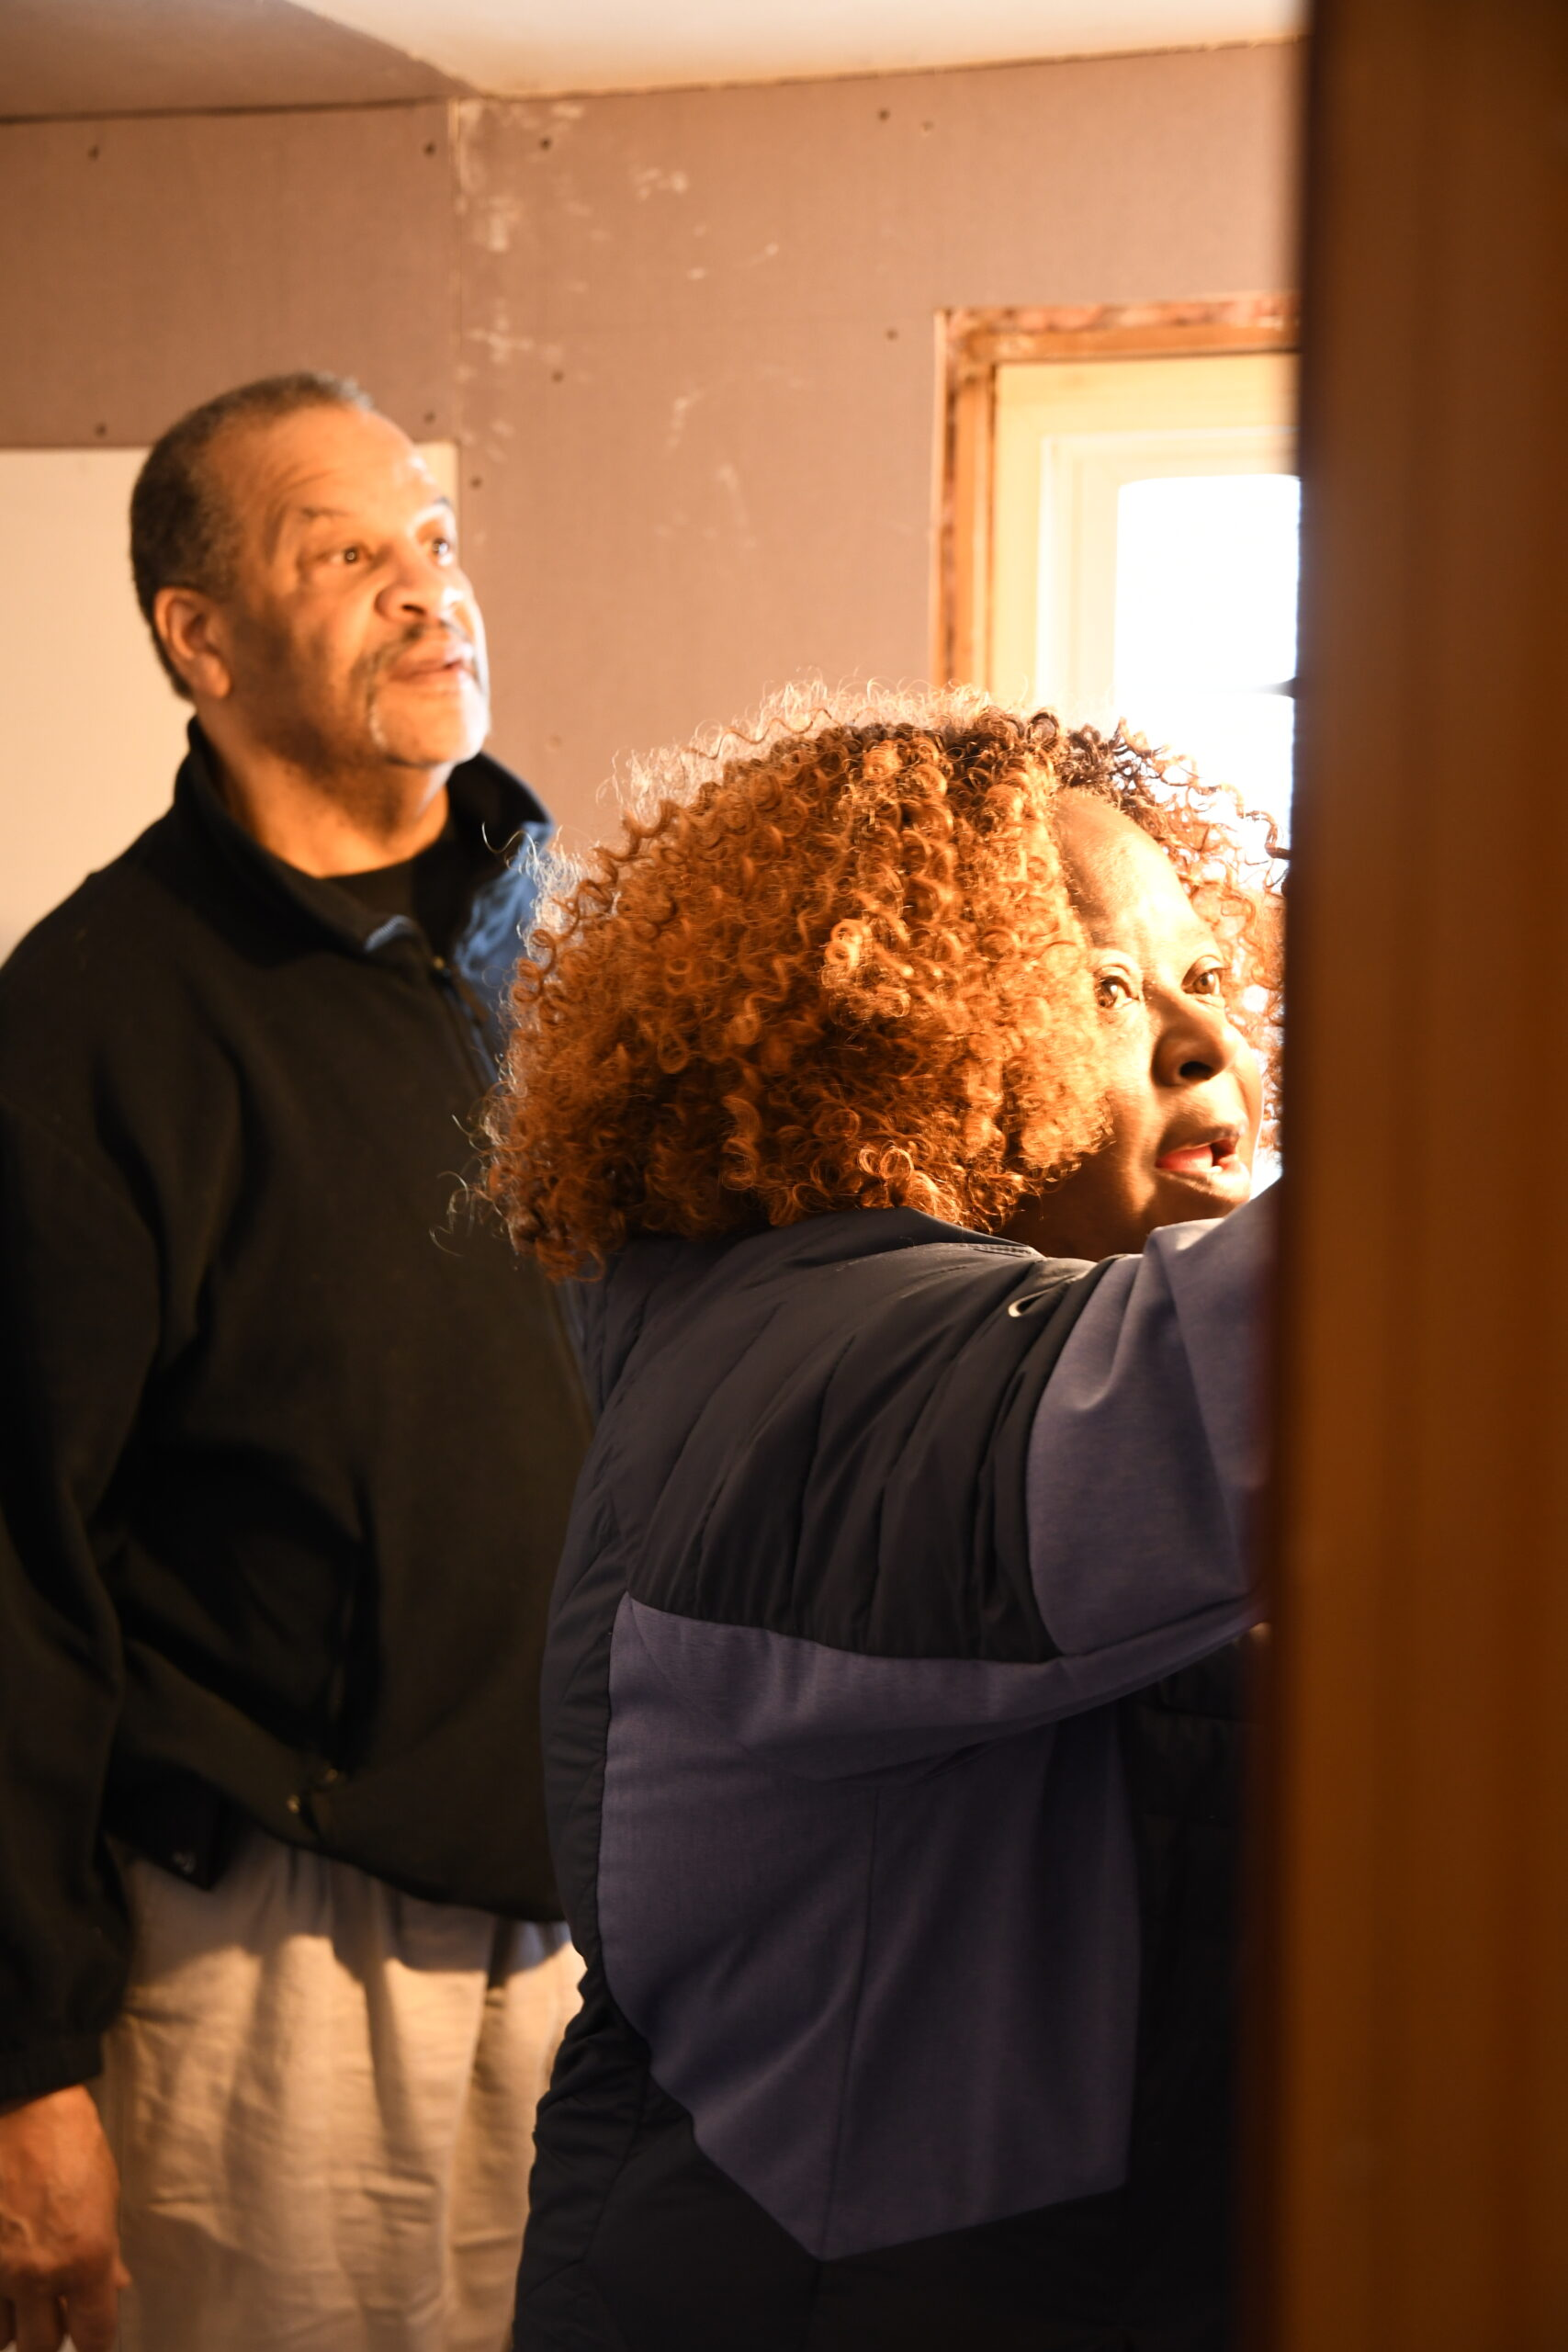 Douglas Mackie works with Delvashah McDaniel with health and safety upgrades in her bathroom.